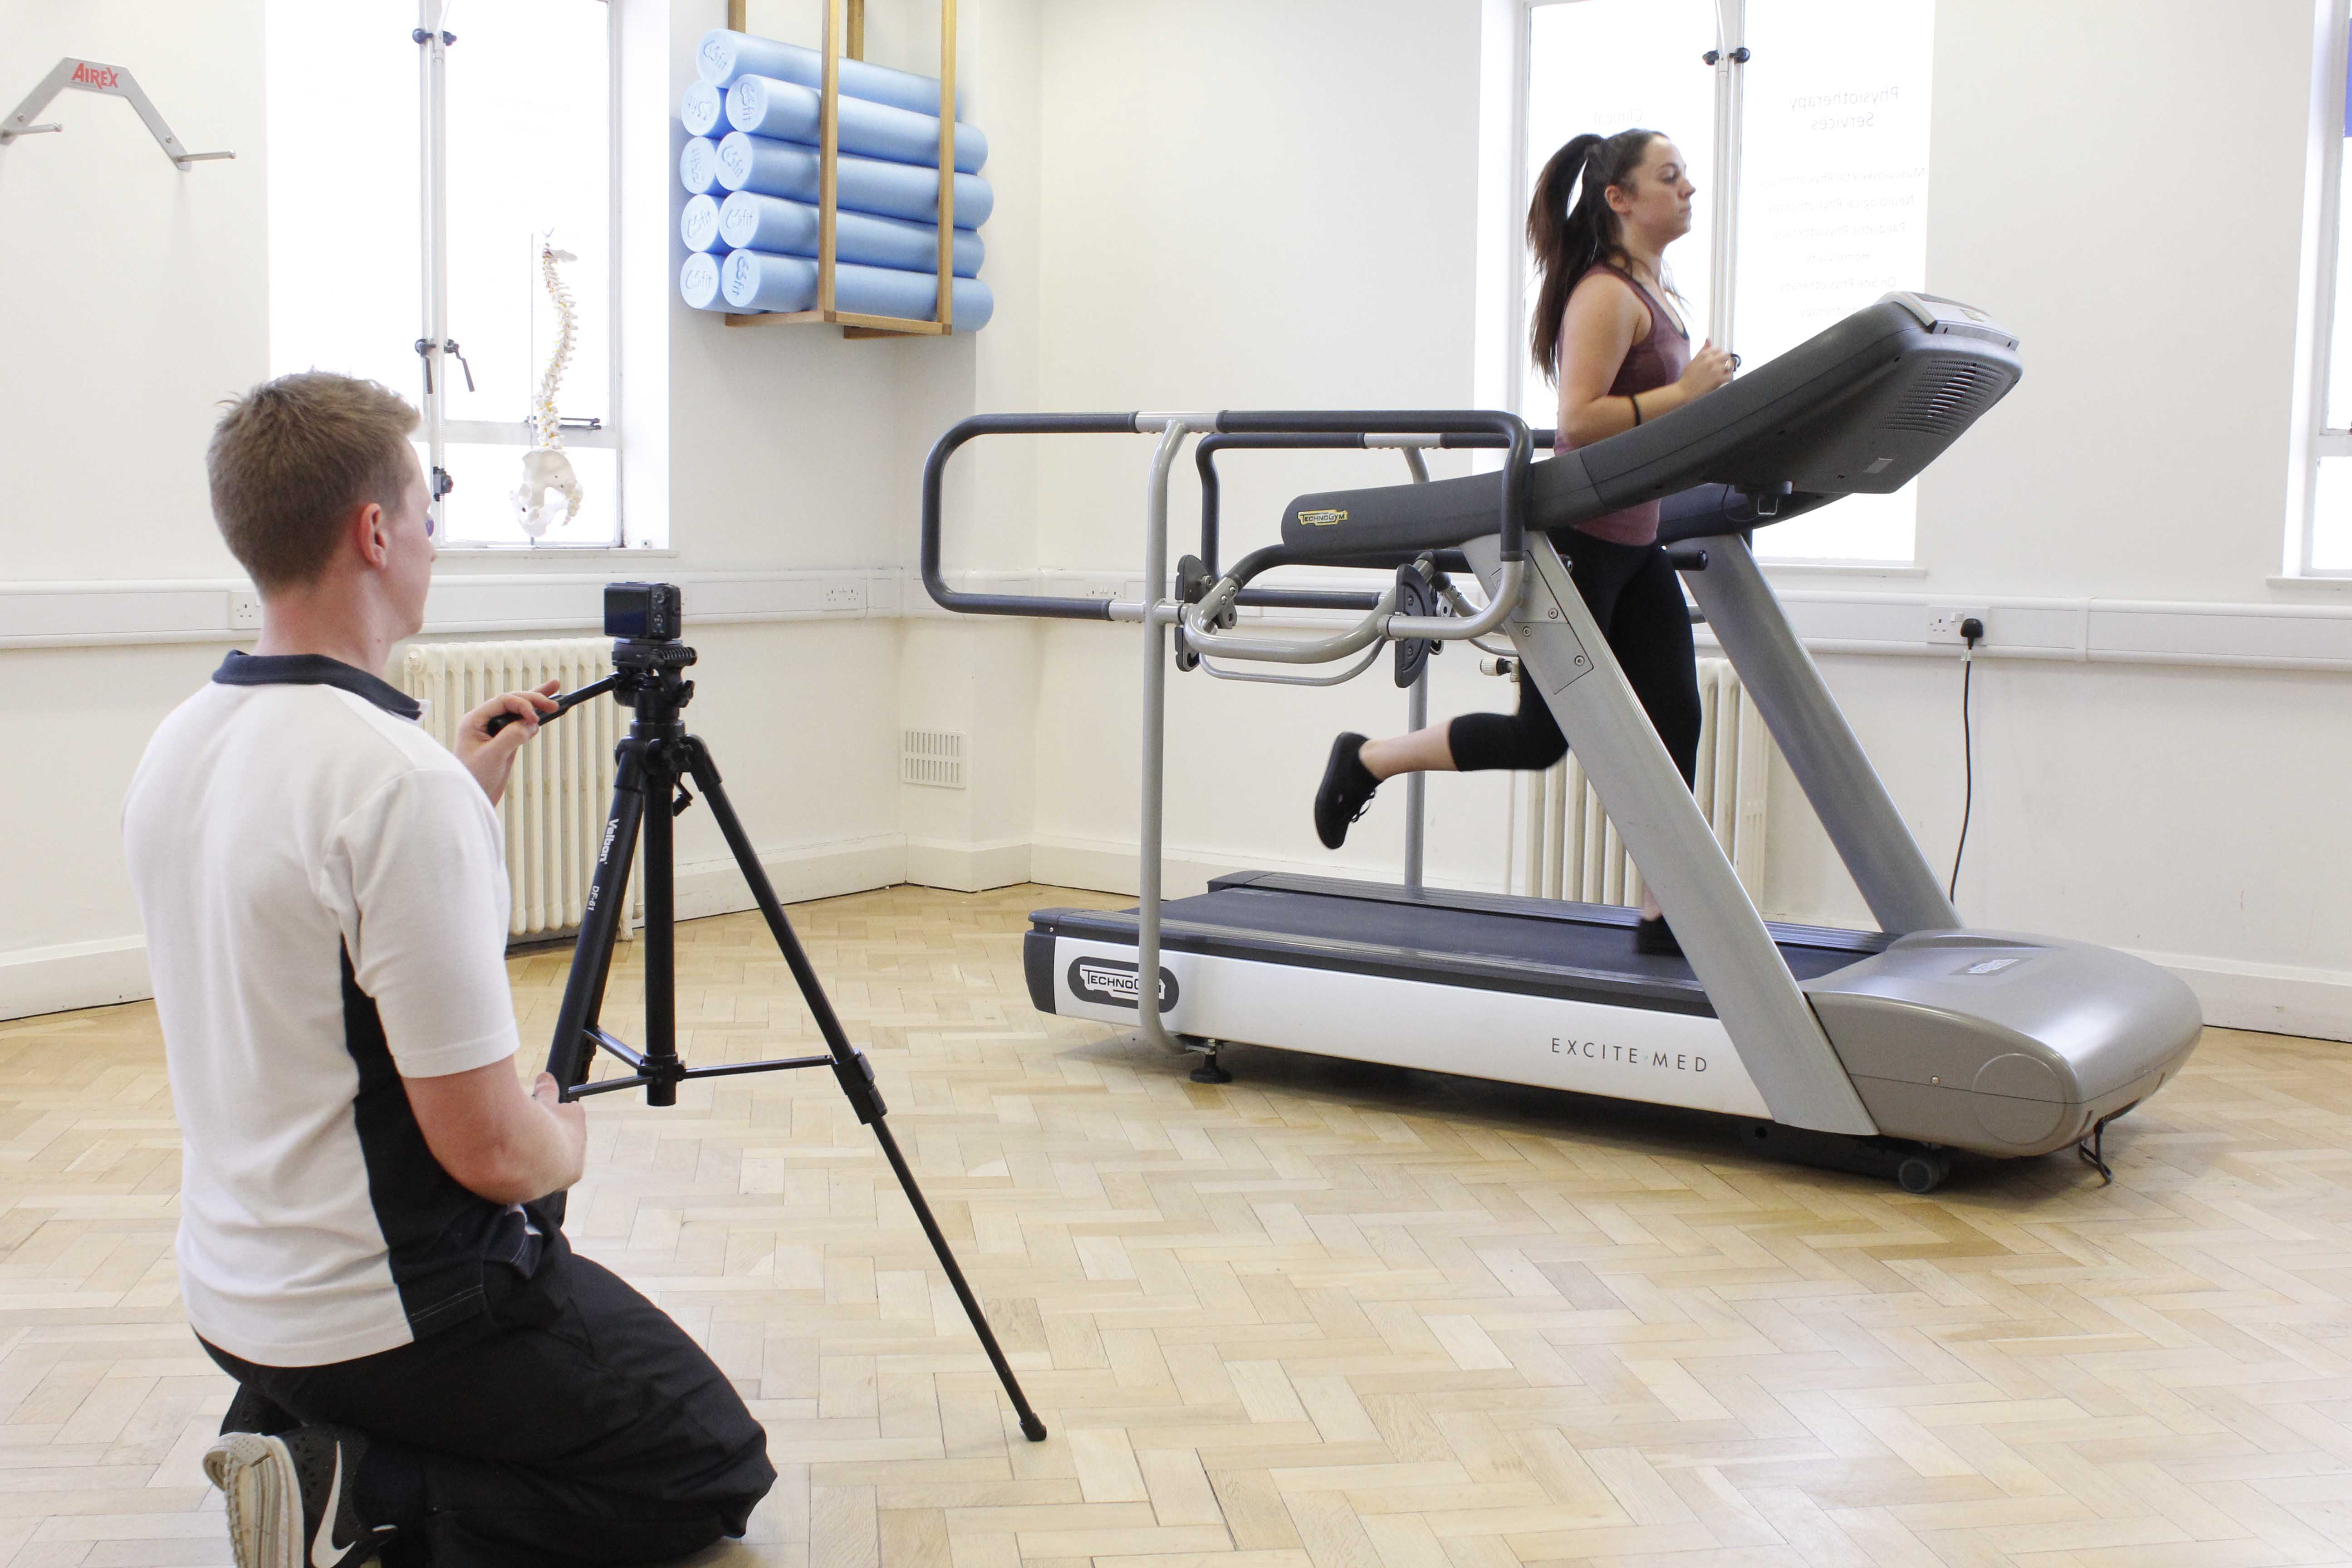 Biomechanical assessment for runners using videography